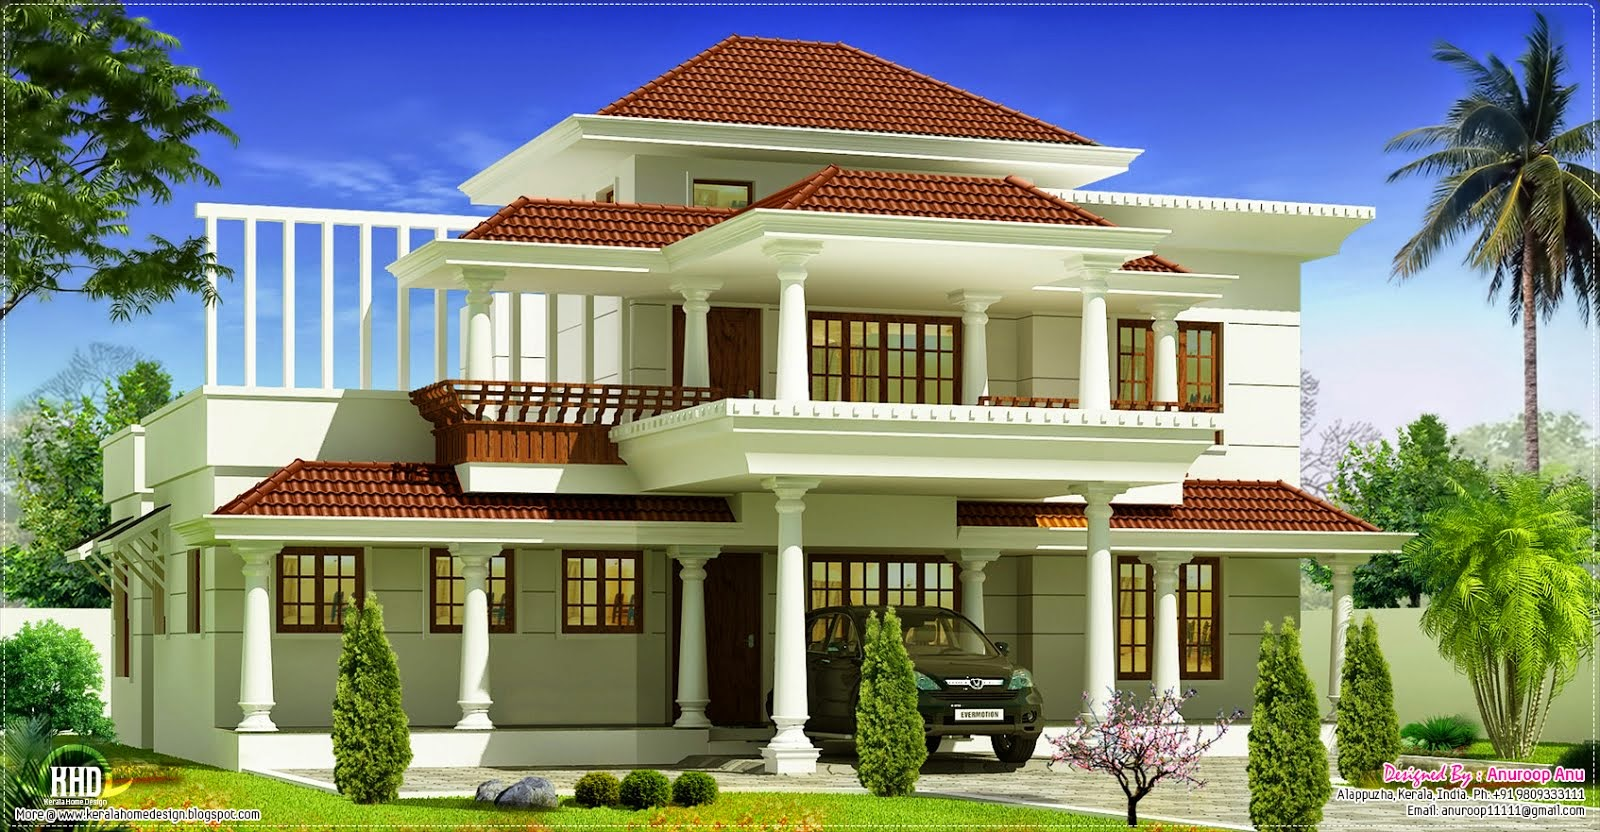 24x7 house plan for House designs kerala style low cost